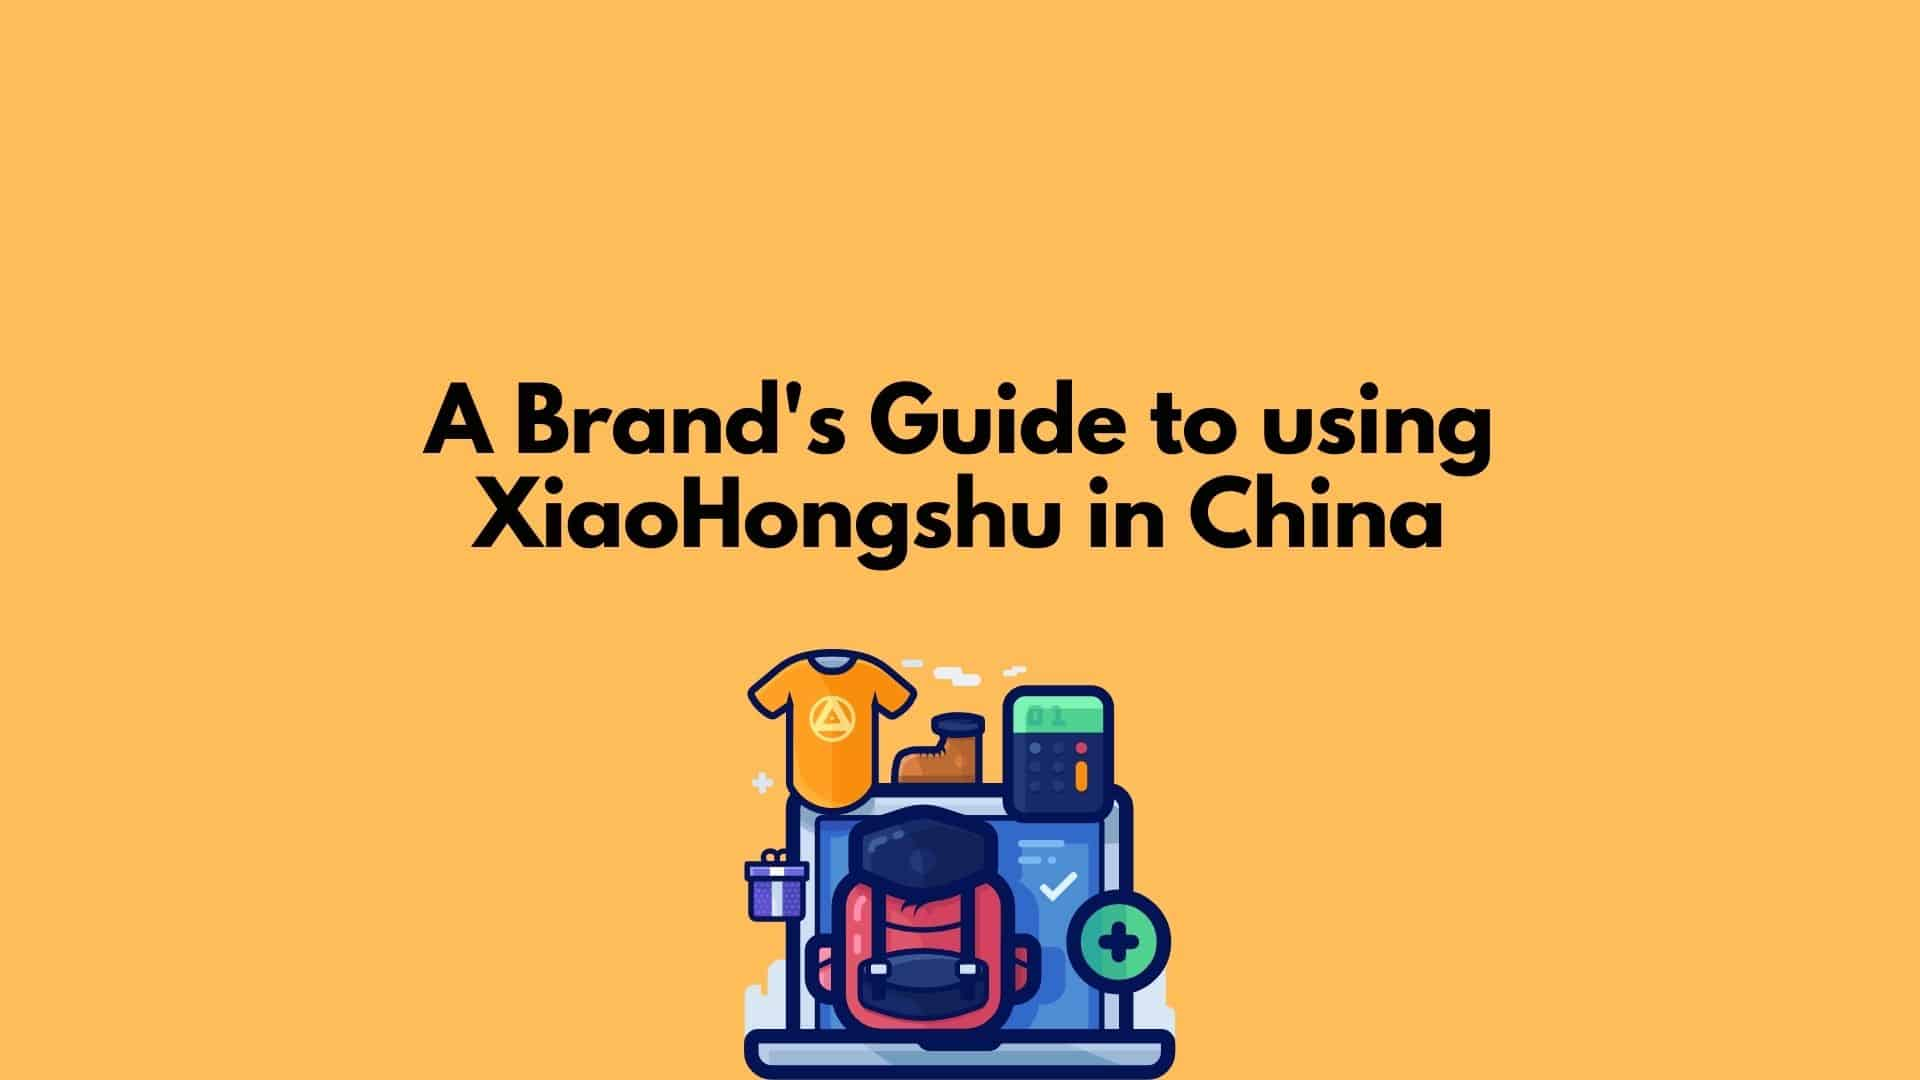 A Brand's Guide to Selling on XiaoHongshu in China